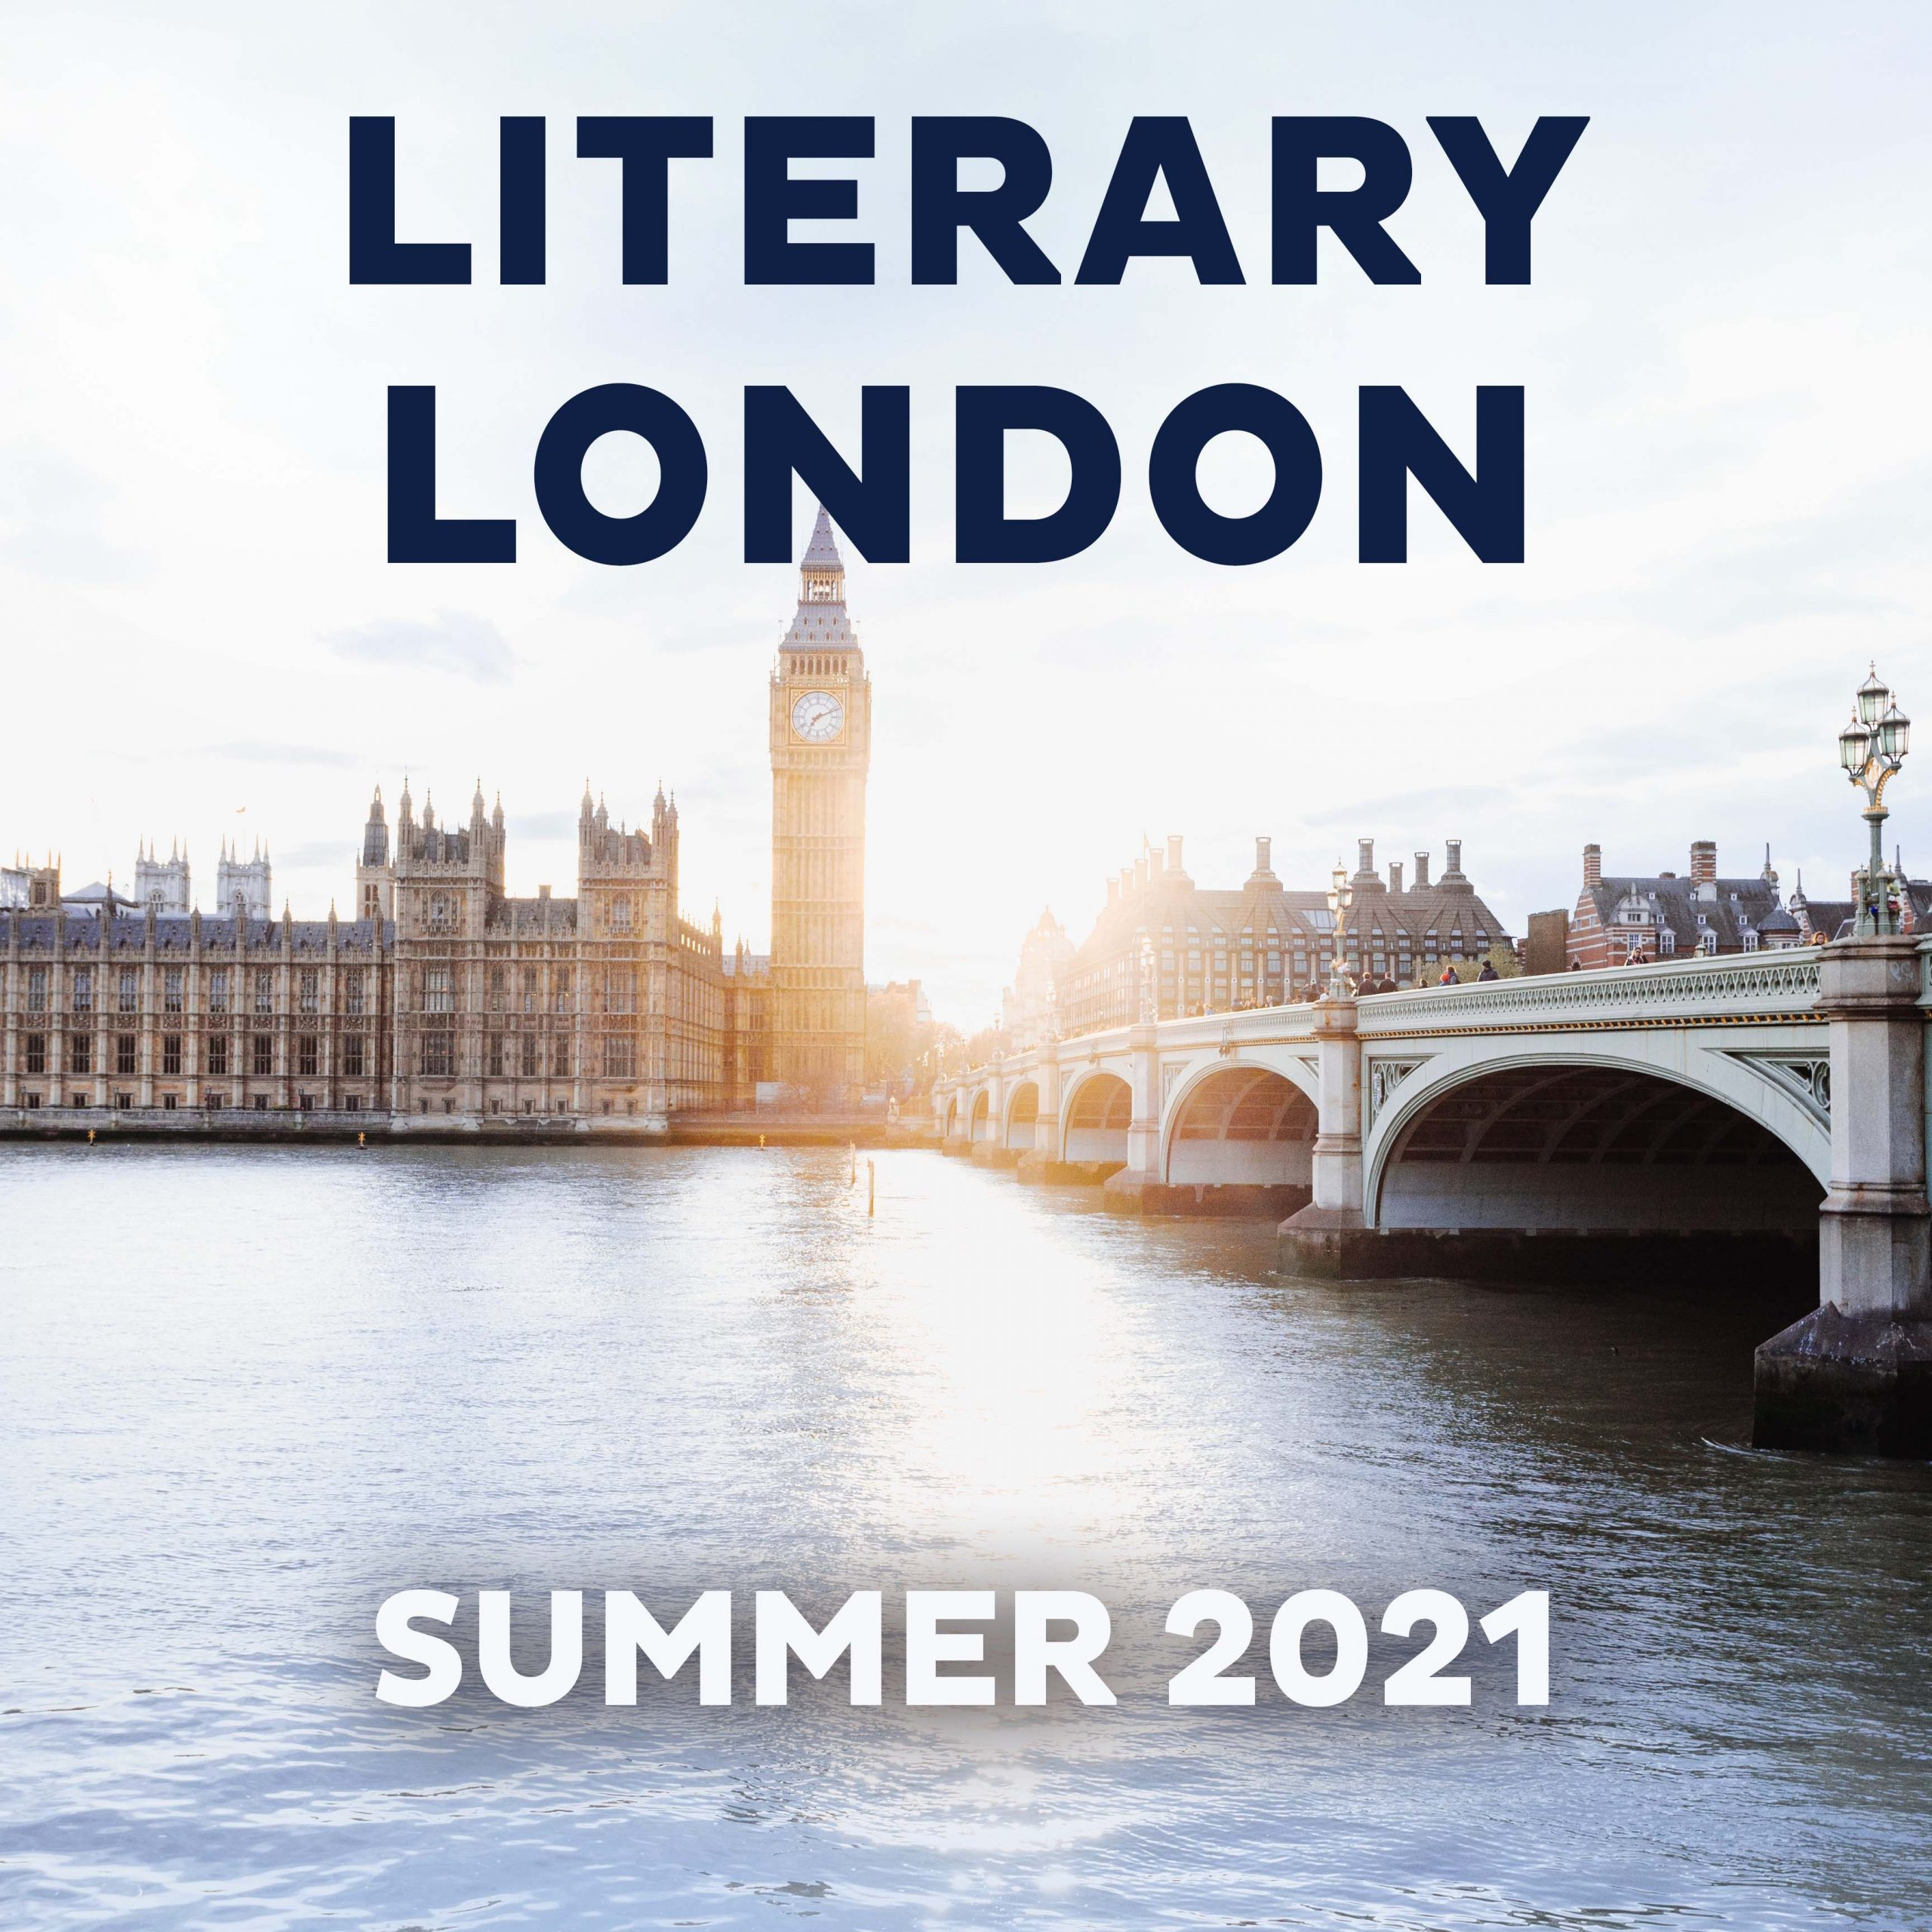 Image with text saying Literary London Summer 2021